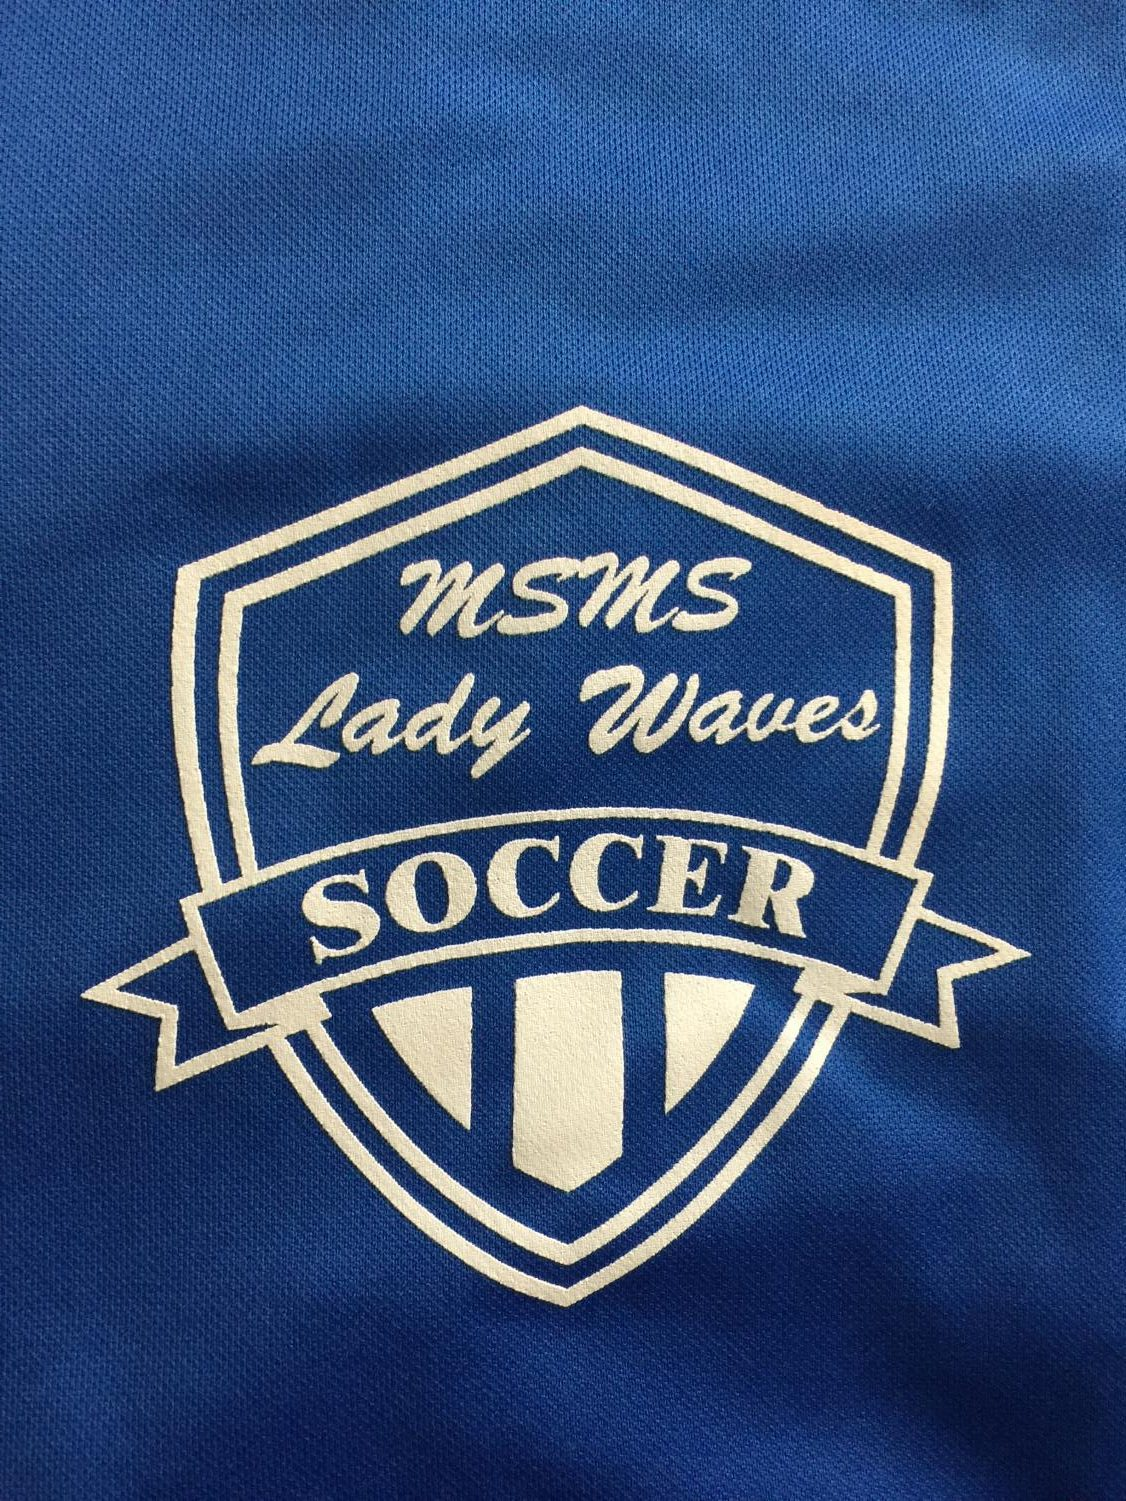 The MSMS Blue and Lady Waves soccer logo shines proudly on their soccer jerseys.